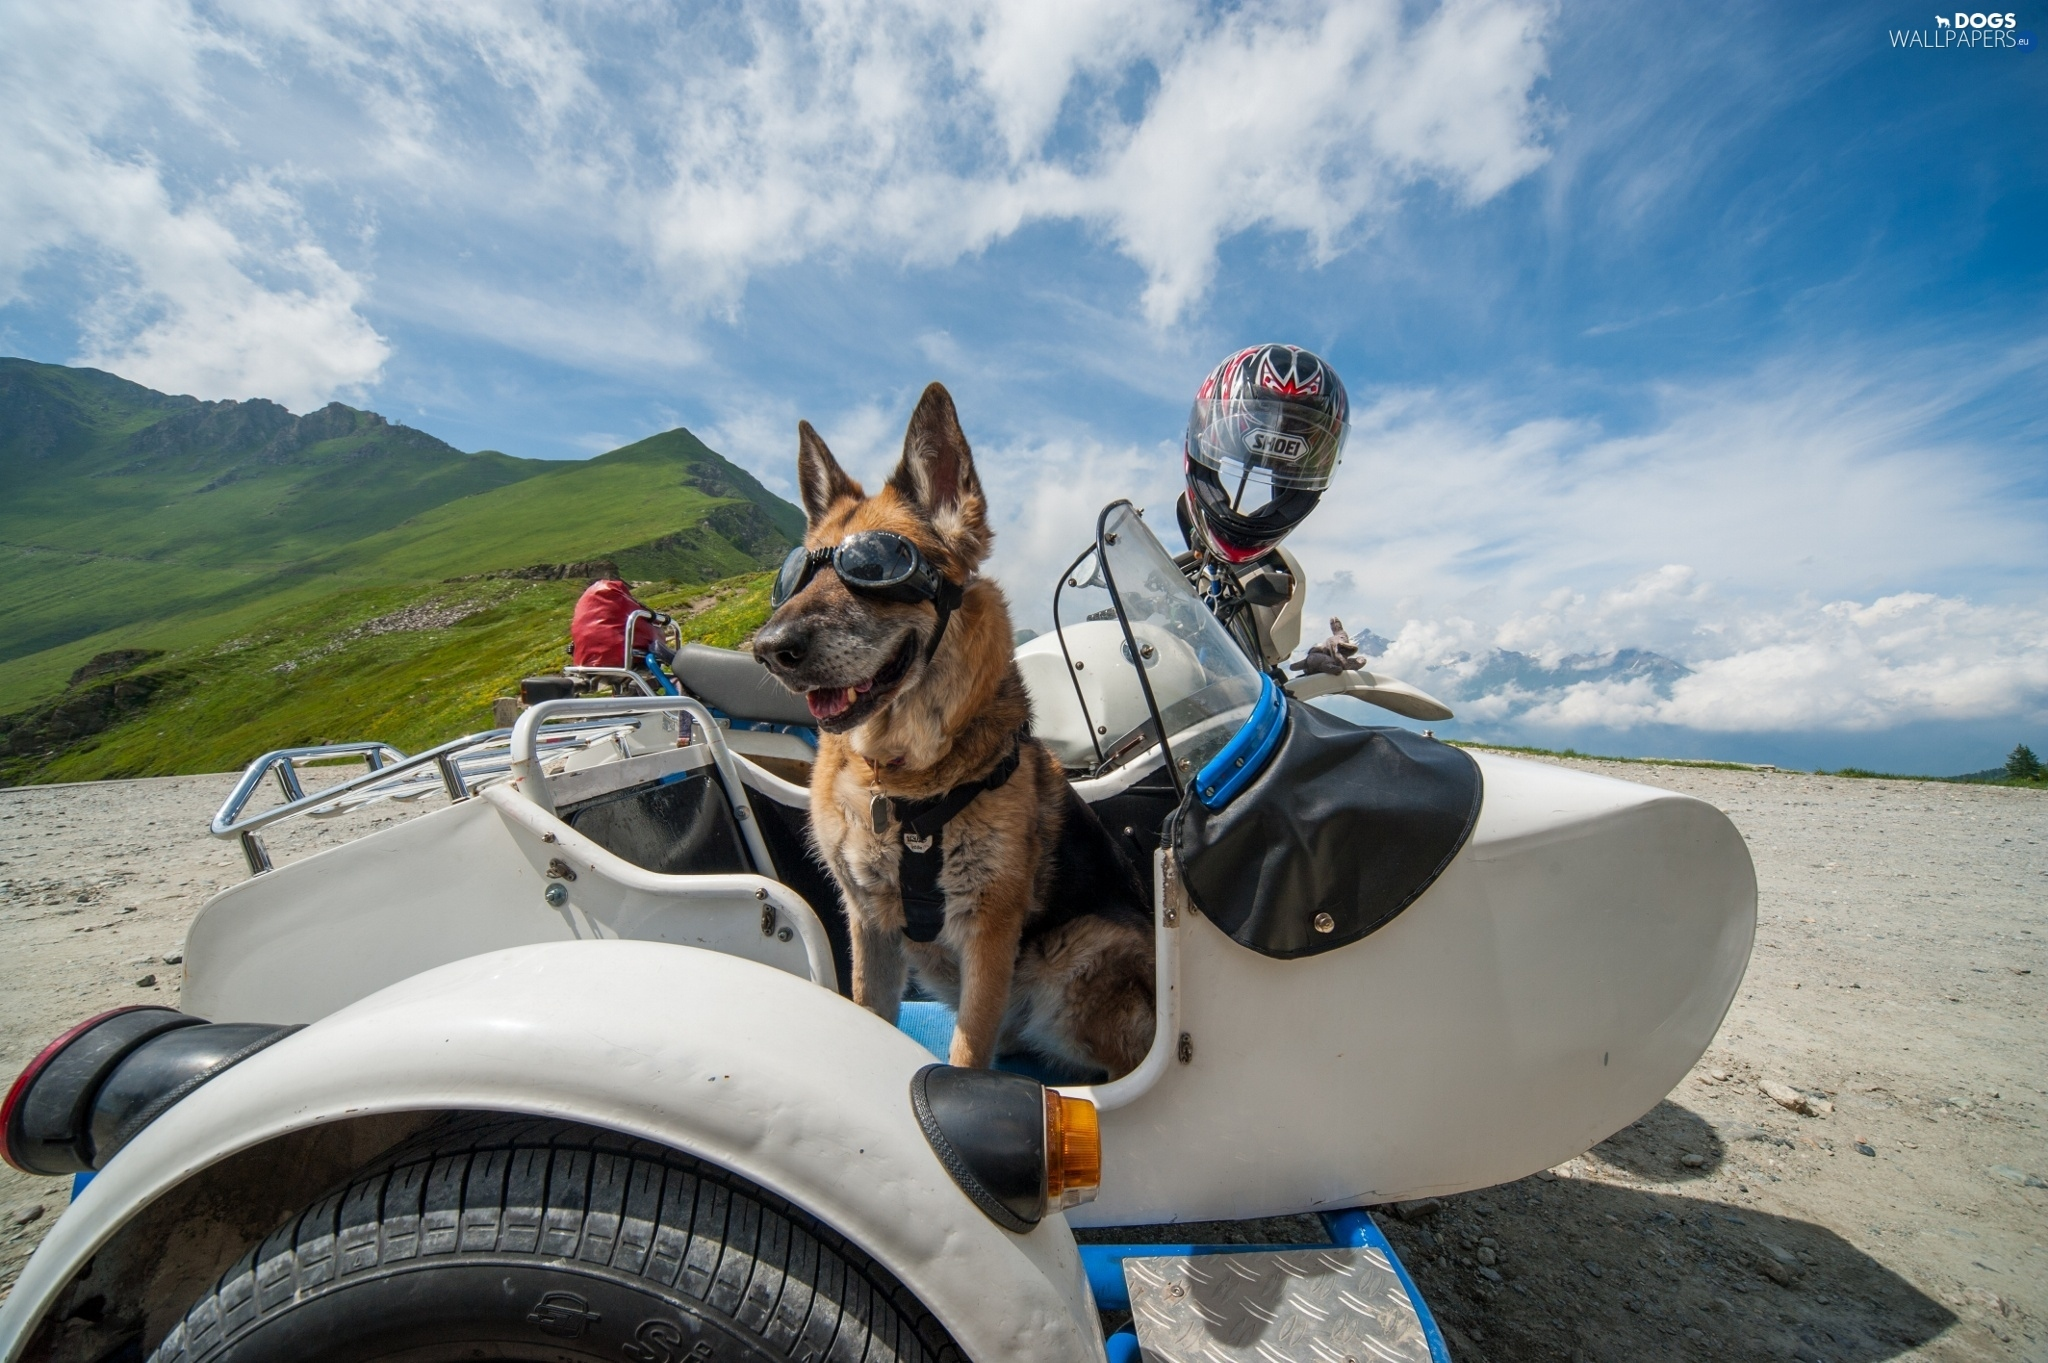 Glasses Helmet German Shepherd Funny Motor Bike Dogs: shepherds motors